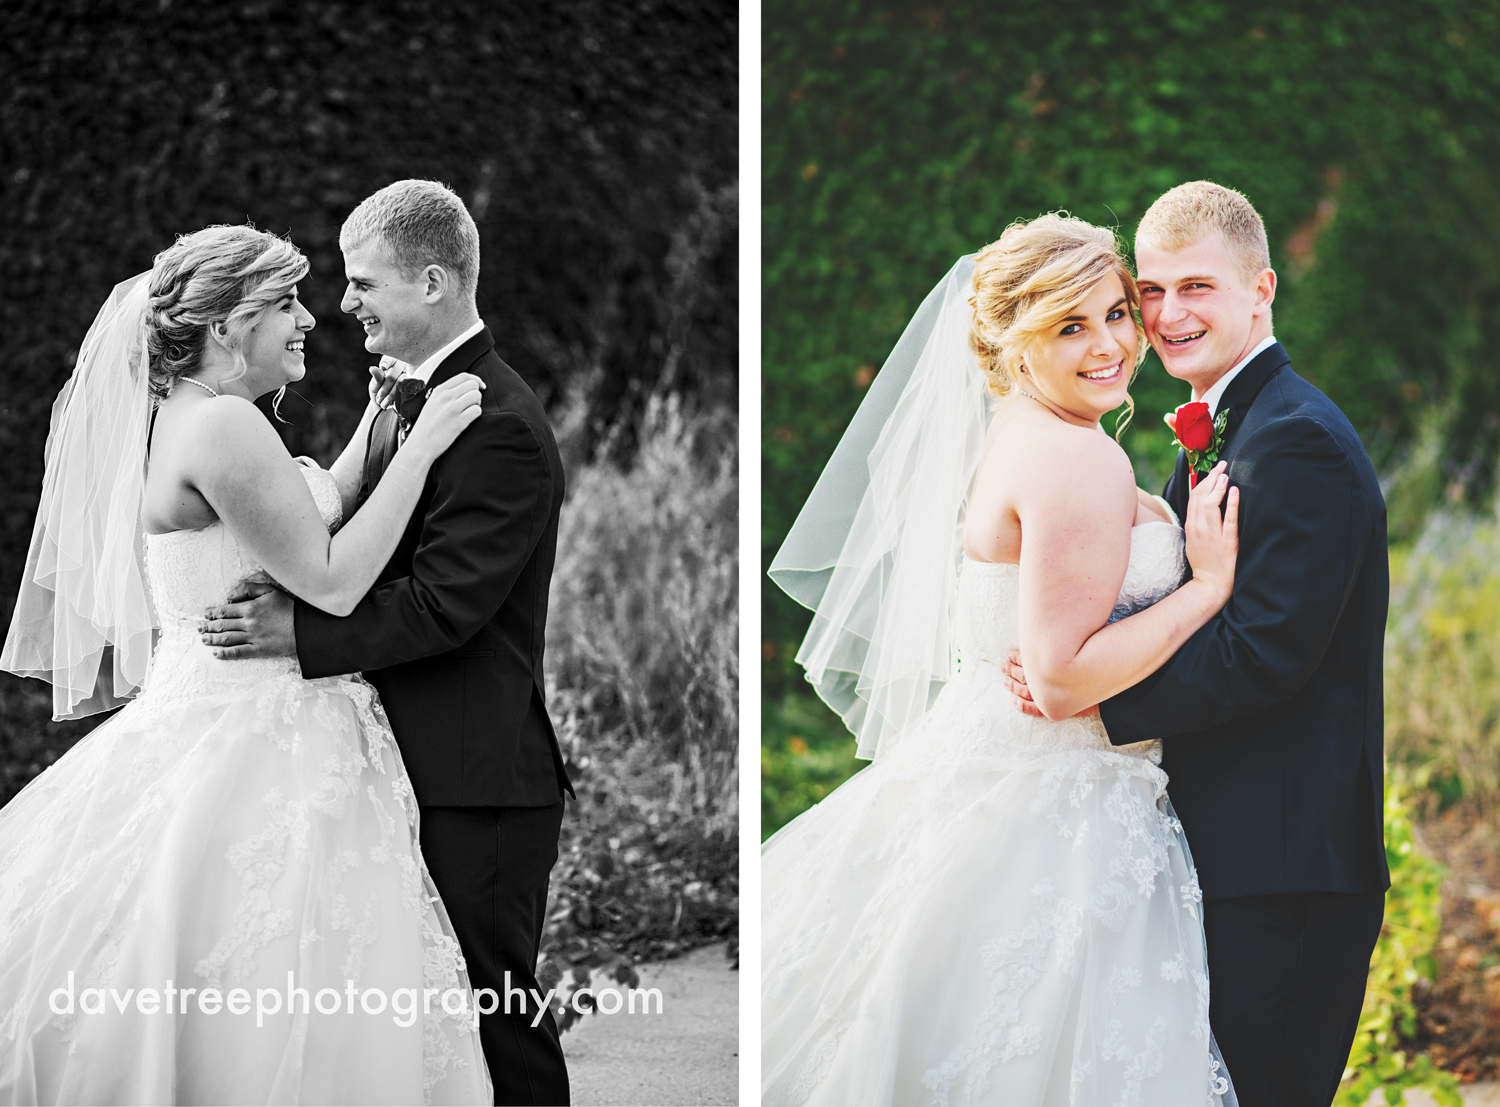 holland_wedding_photographer_02.jpg